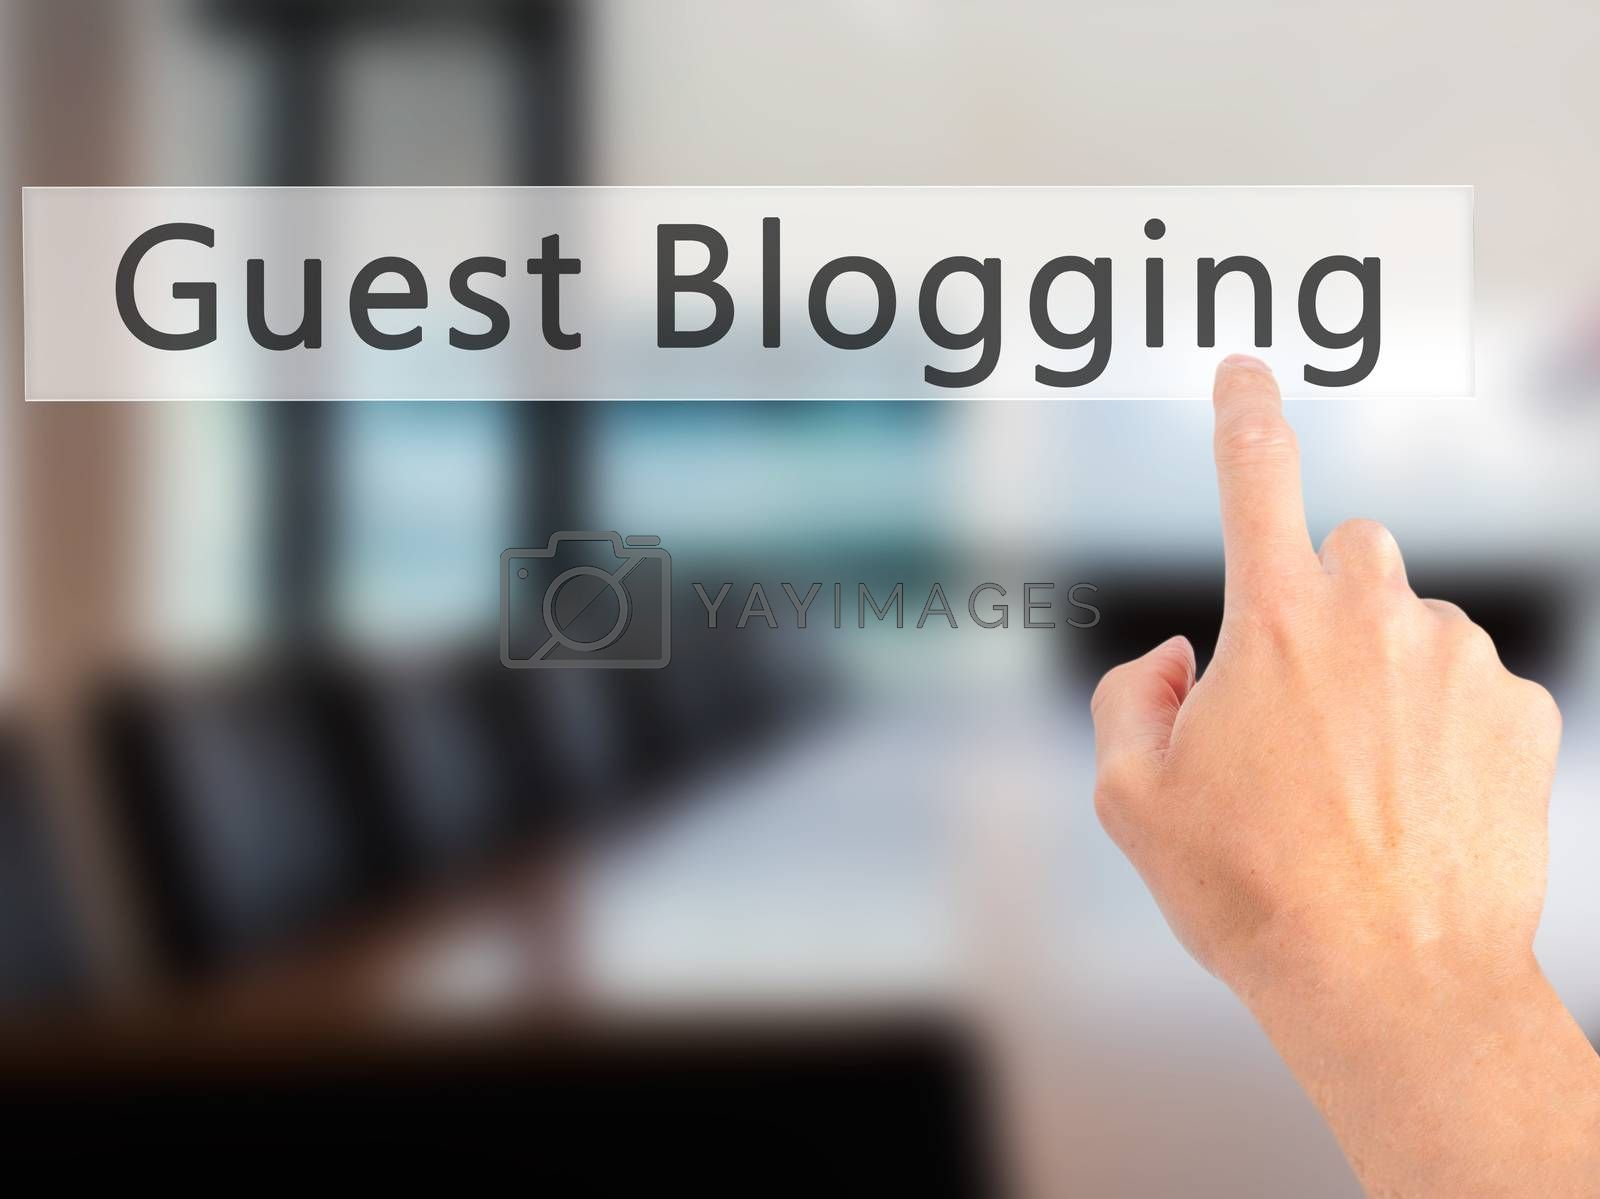 Guest Blogging - Hand pressing a button on blurred background co by netsay.net